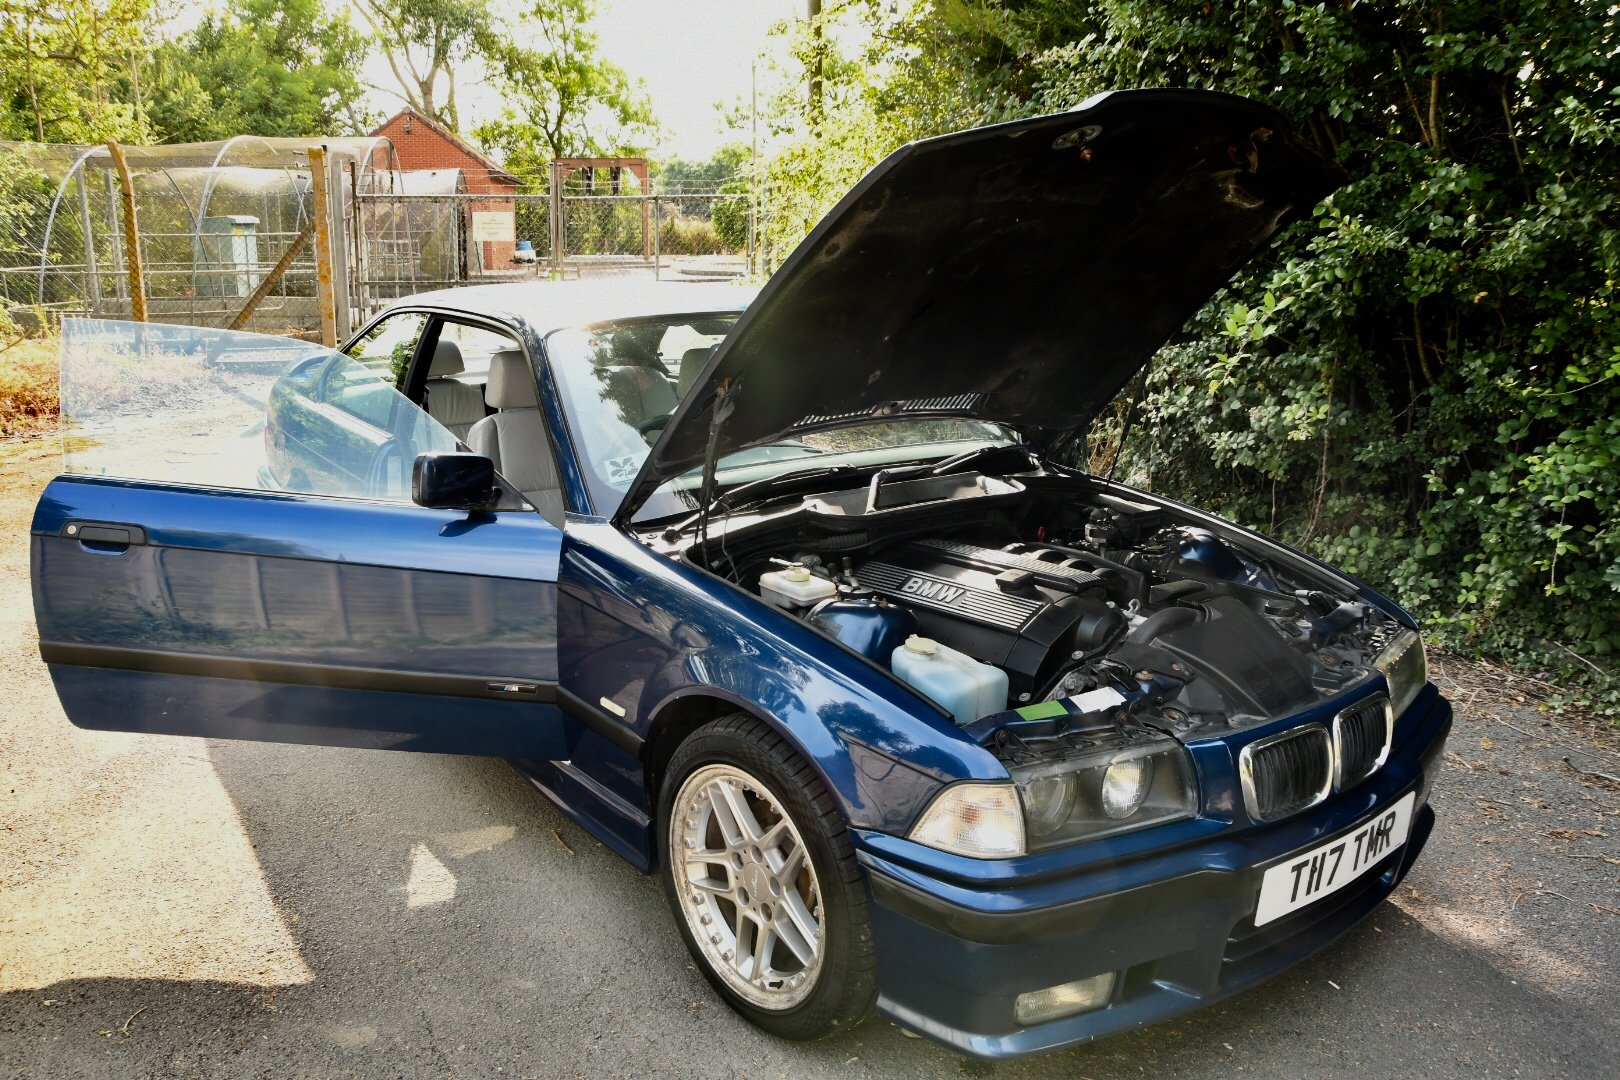 1999 Bmw 2.8i sport avus blue manual SOLD (picture 4 of 6)